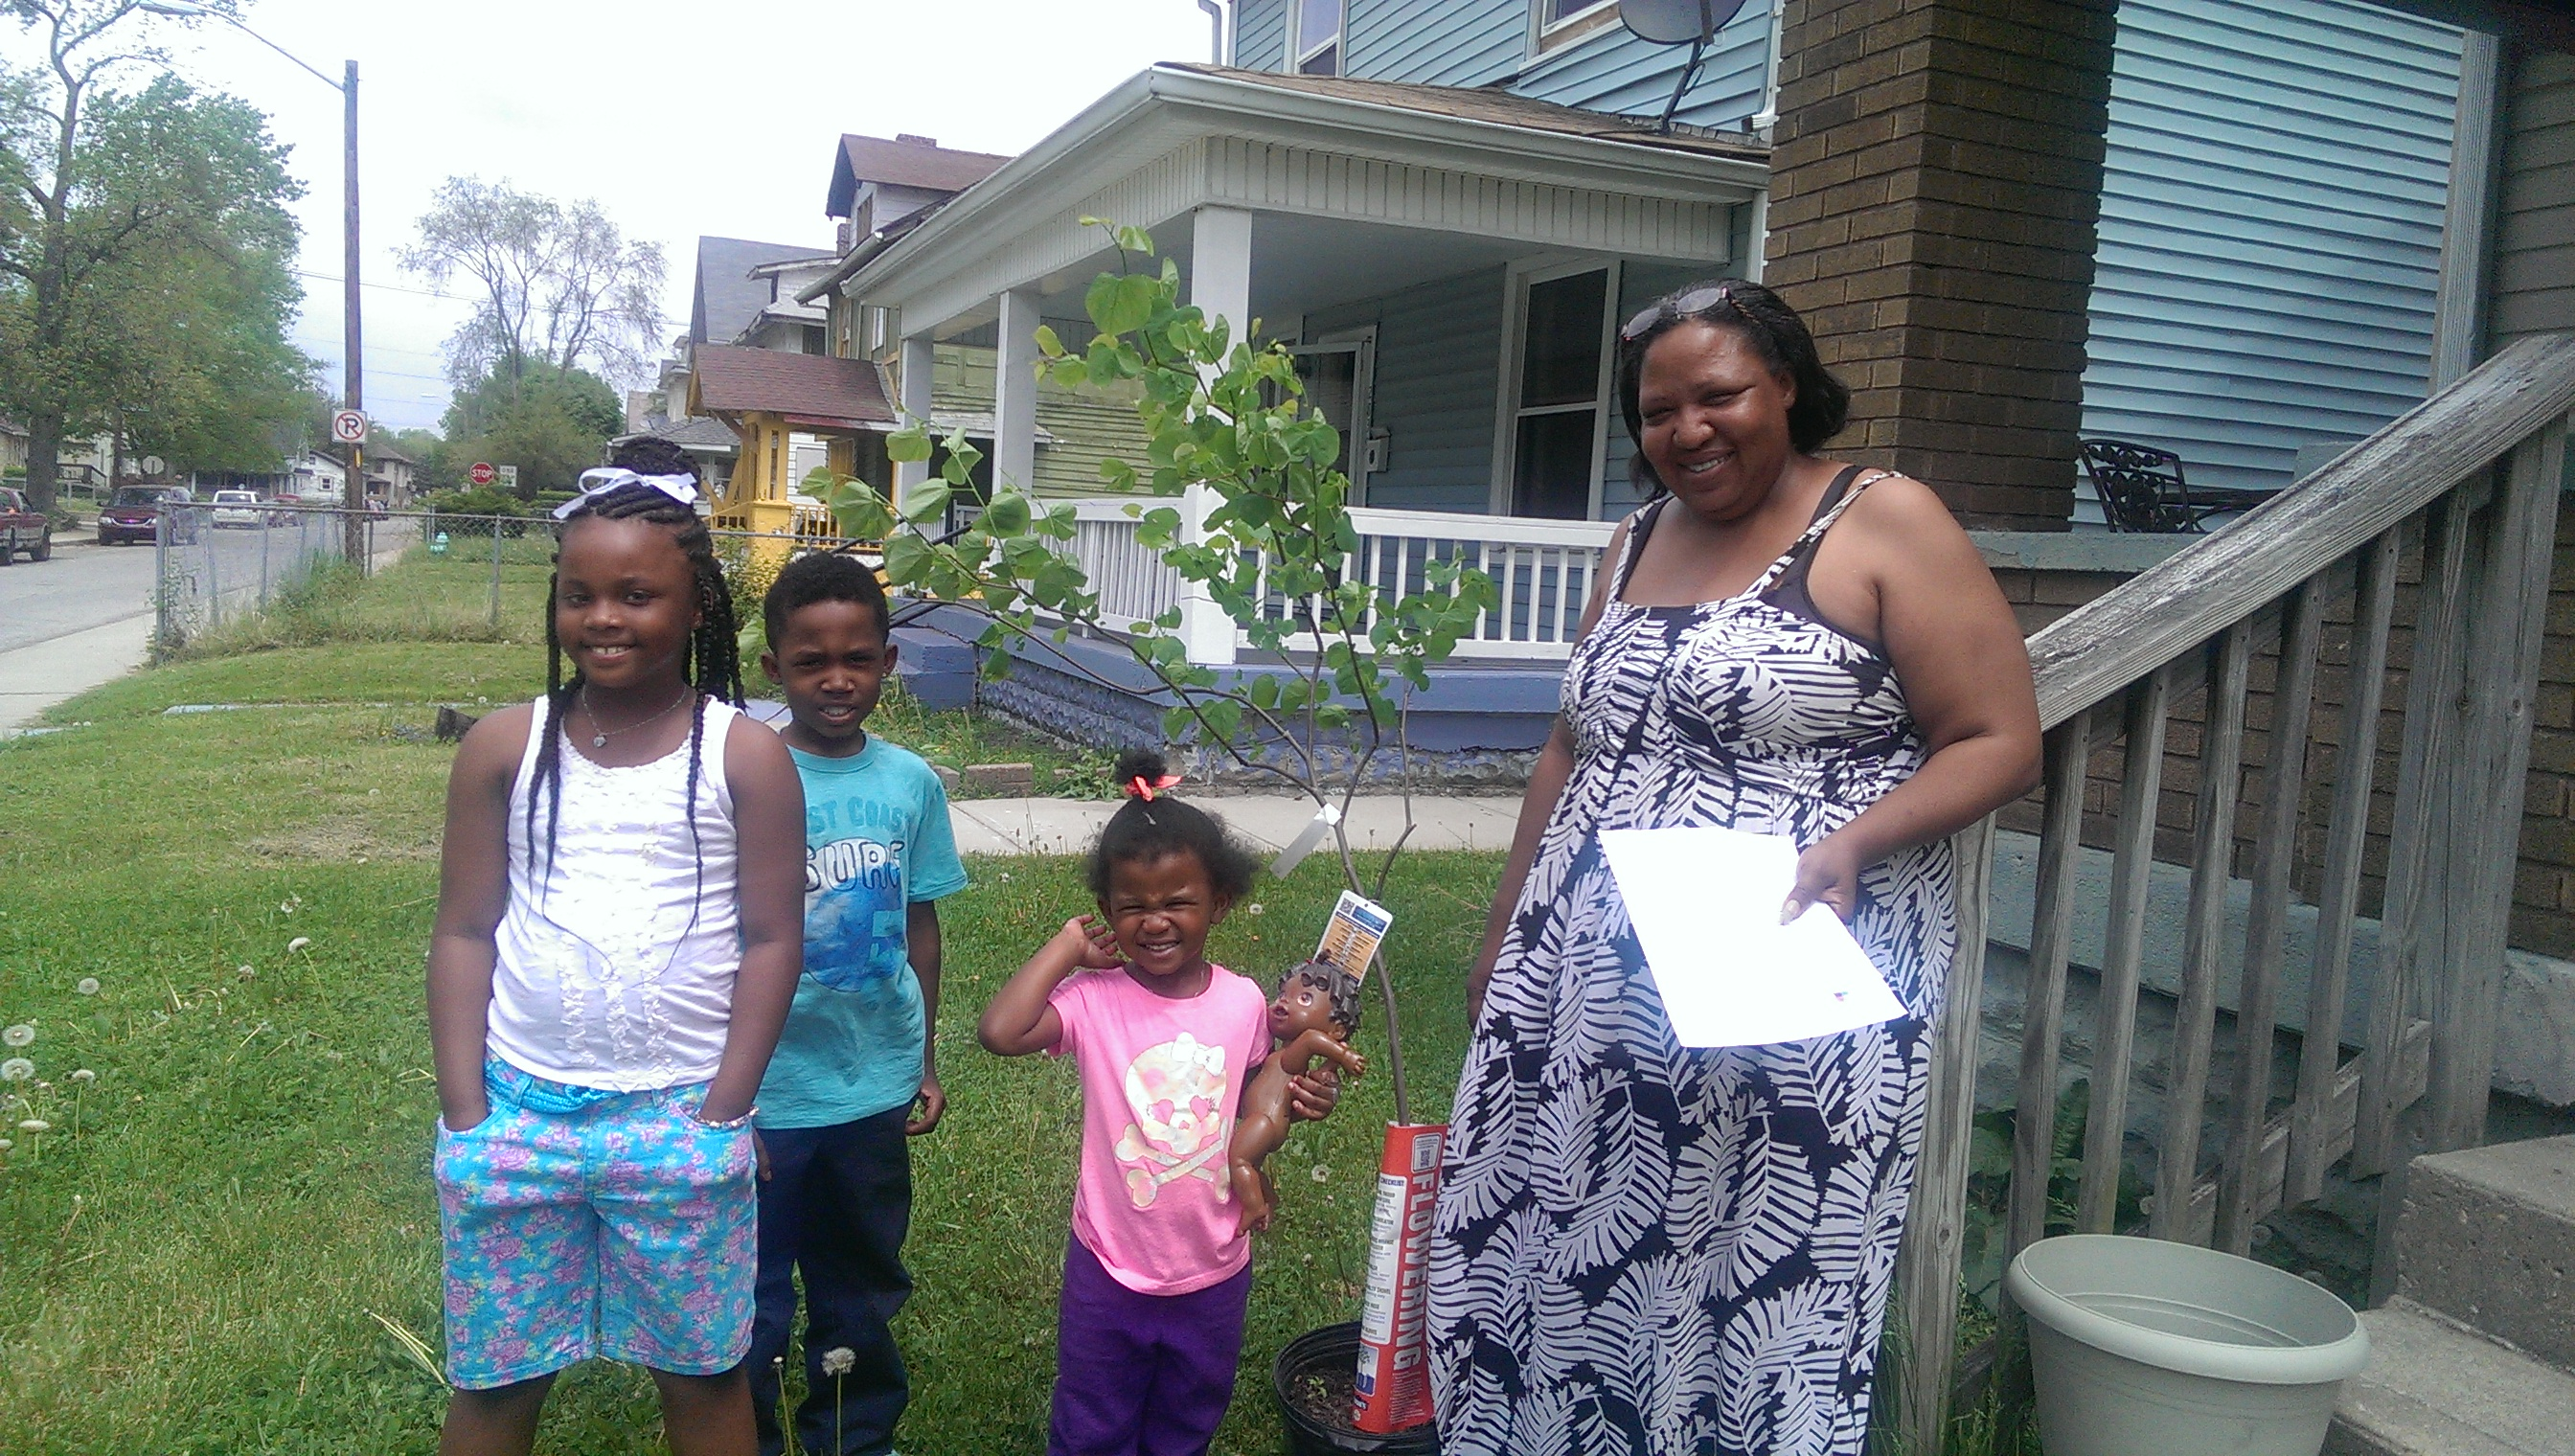 Residents and their new Redbud trees.